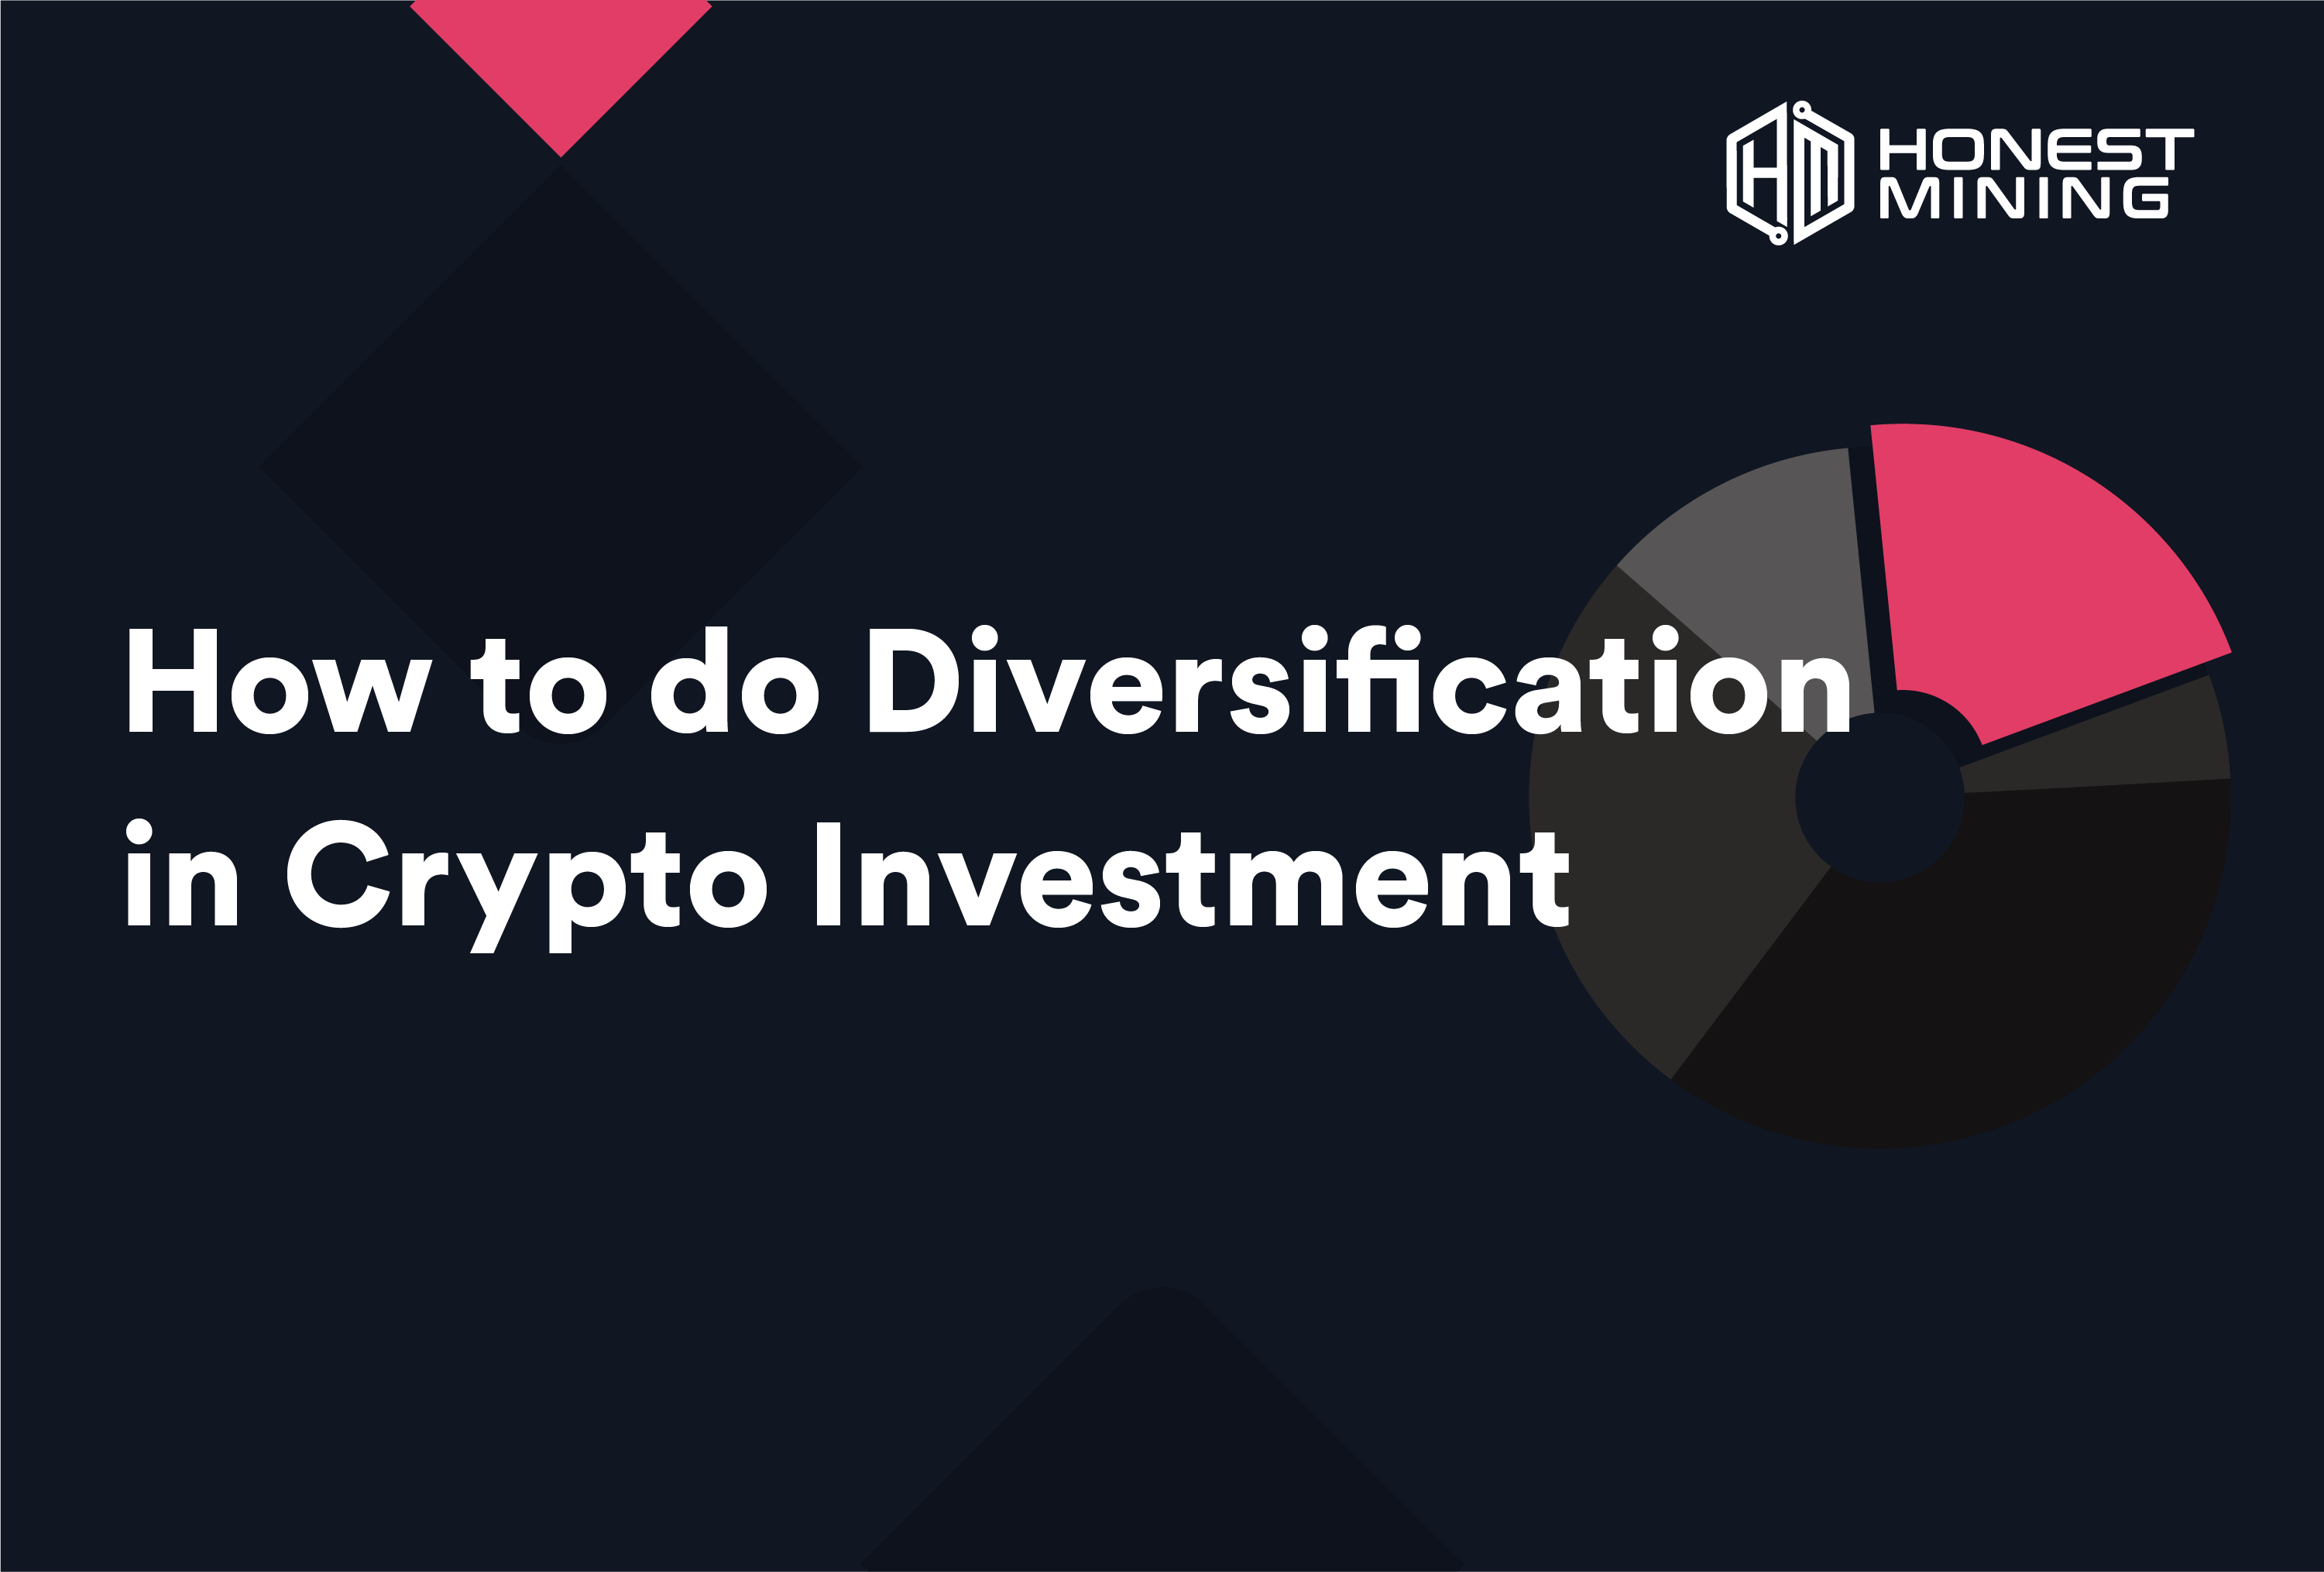 Diversification Investment in Cryptocurrency